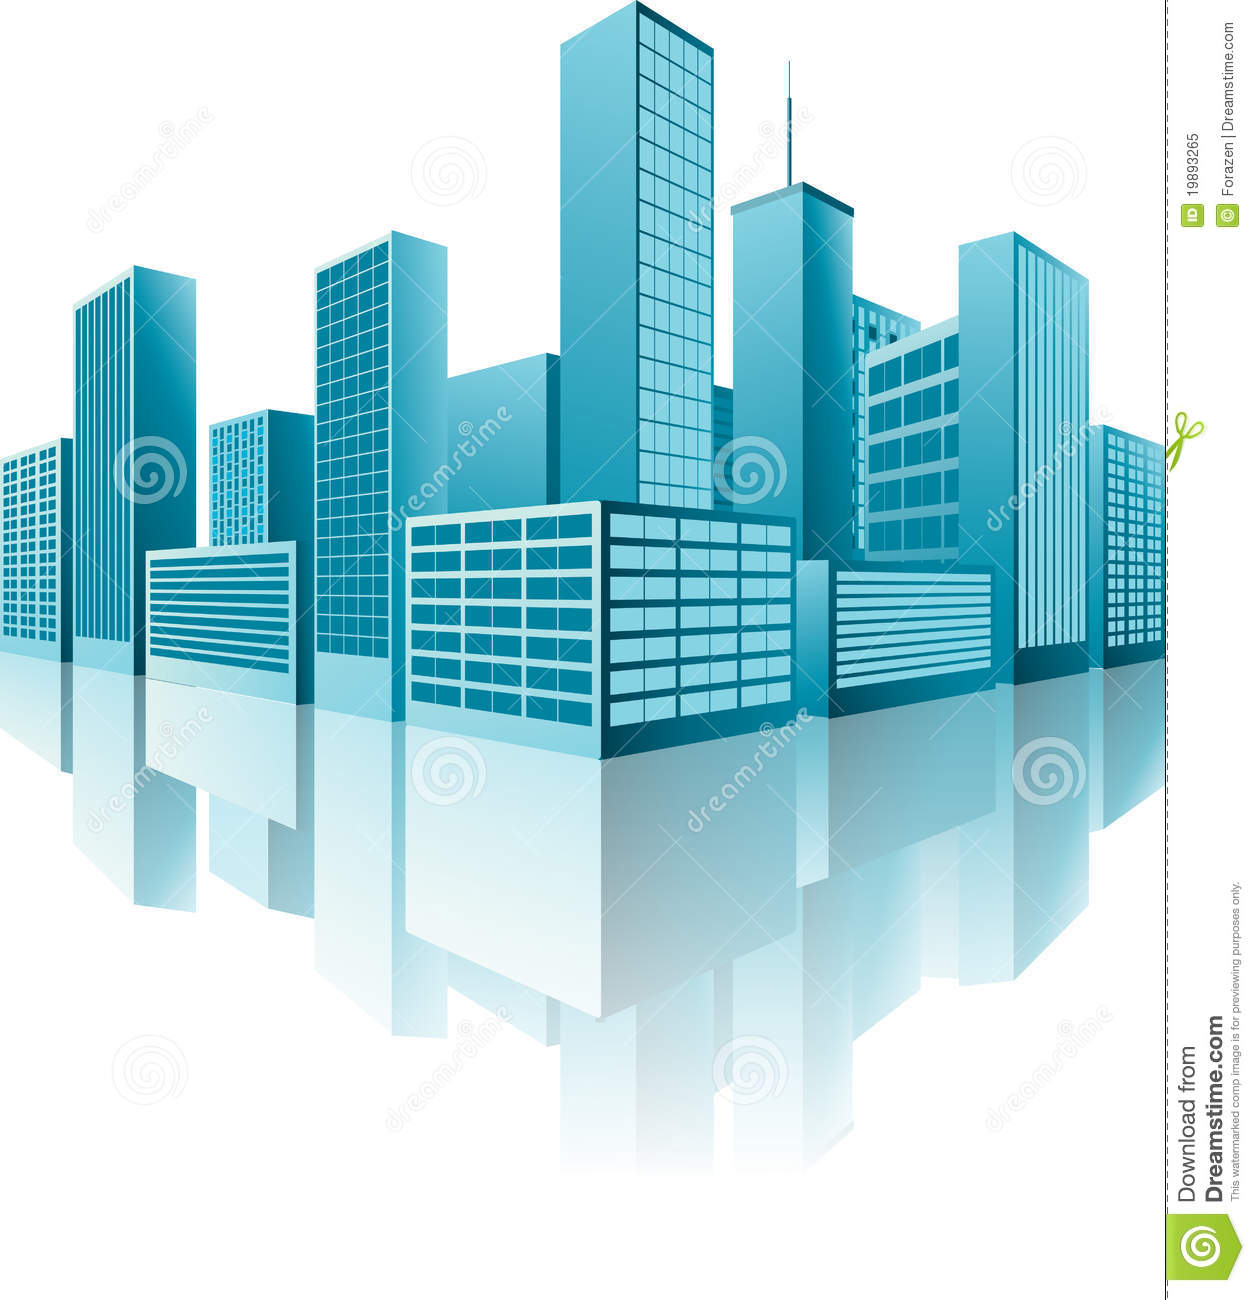 3D Buildings Royalty Free Stock Image.